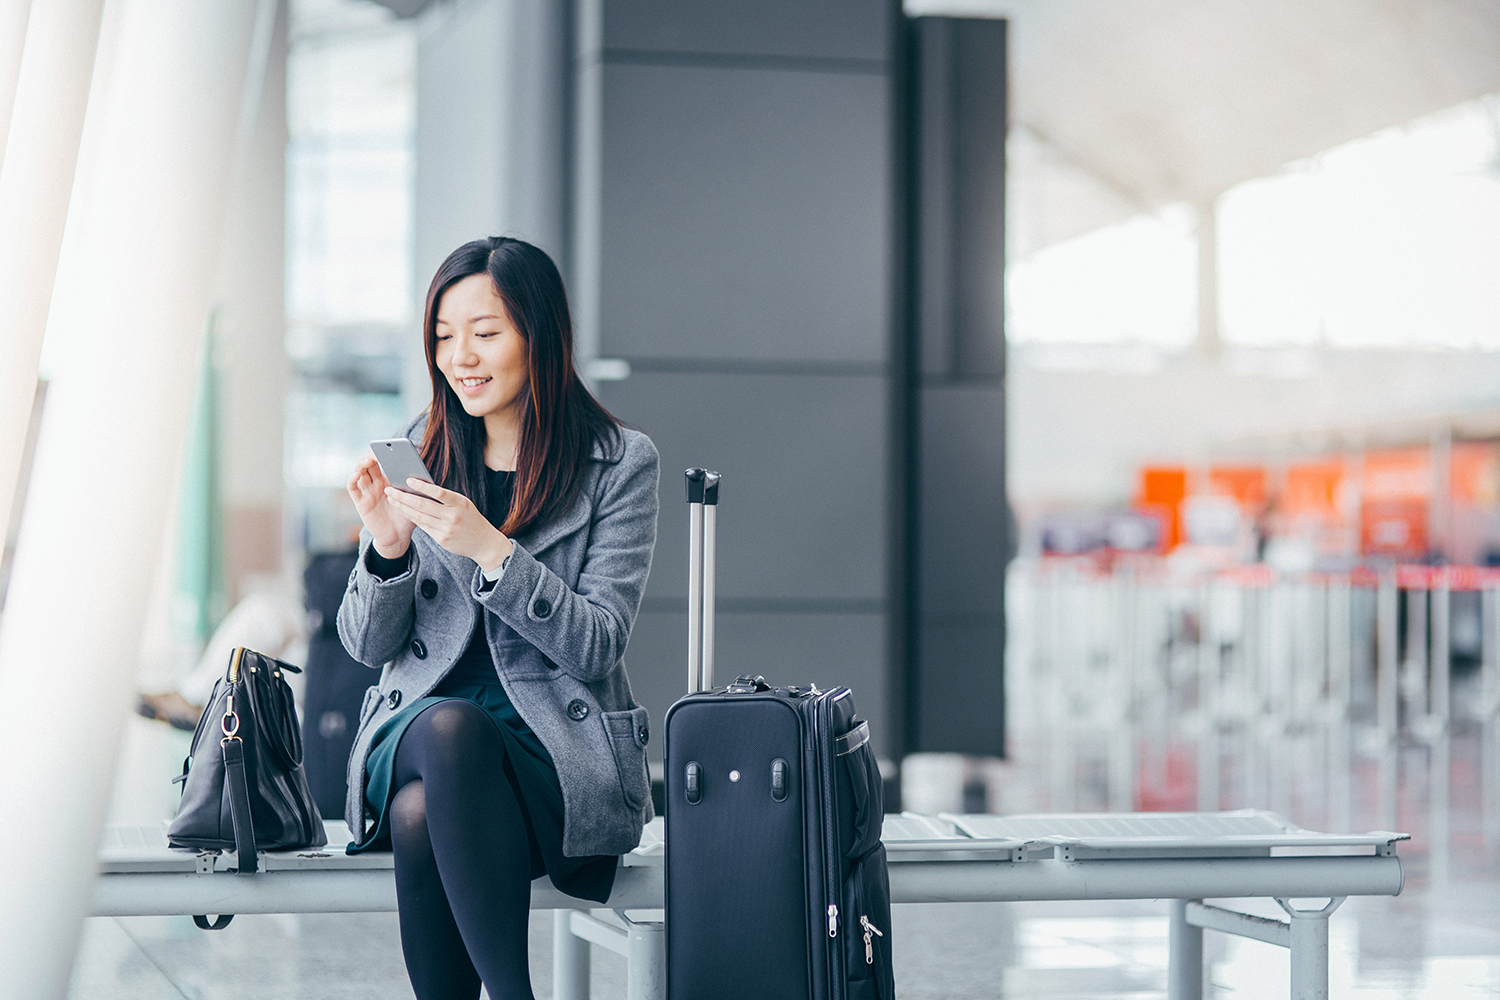 Woman Sitting With Suitcase in Airport